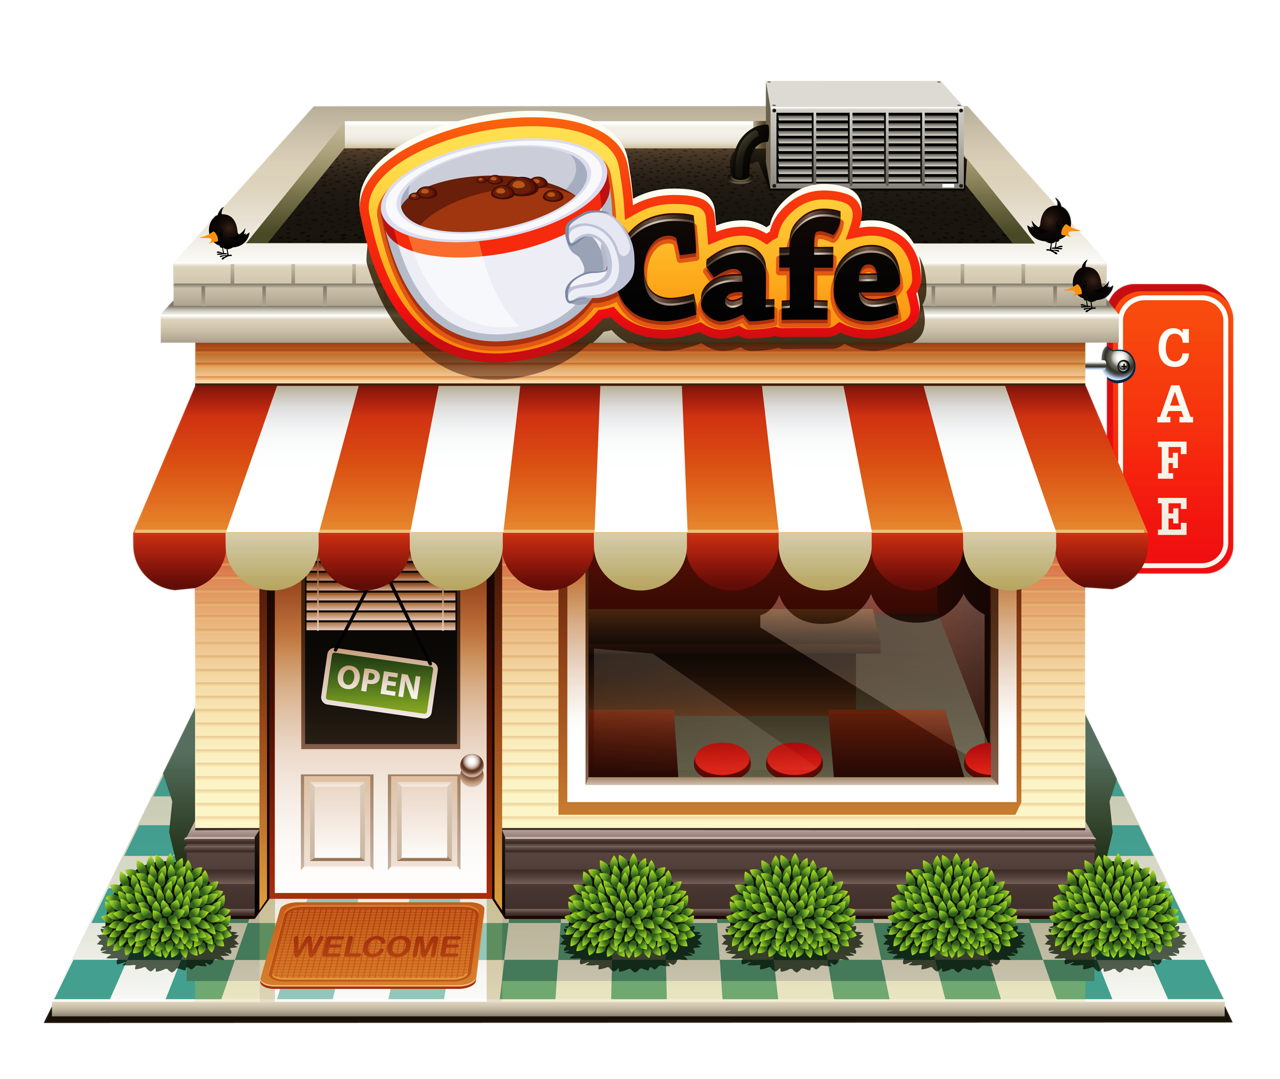 free download Supermarket clipart cafe building. Book shop techflourish collections.